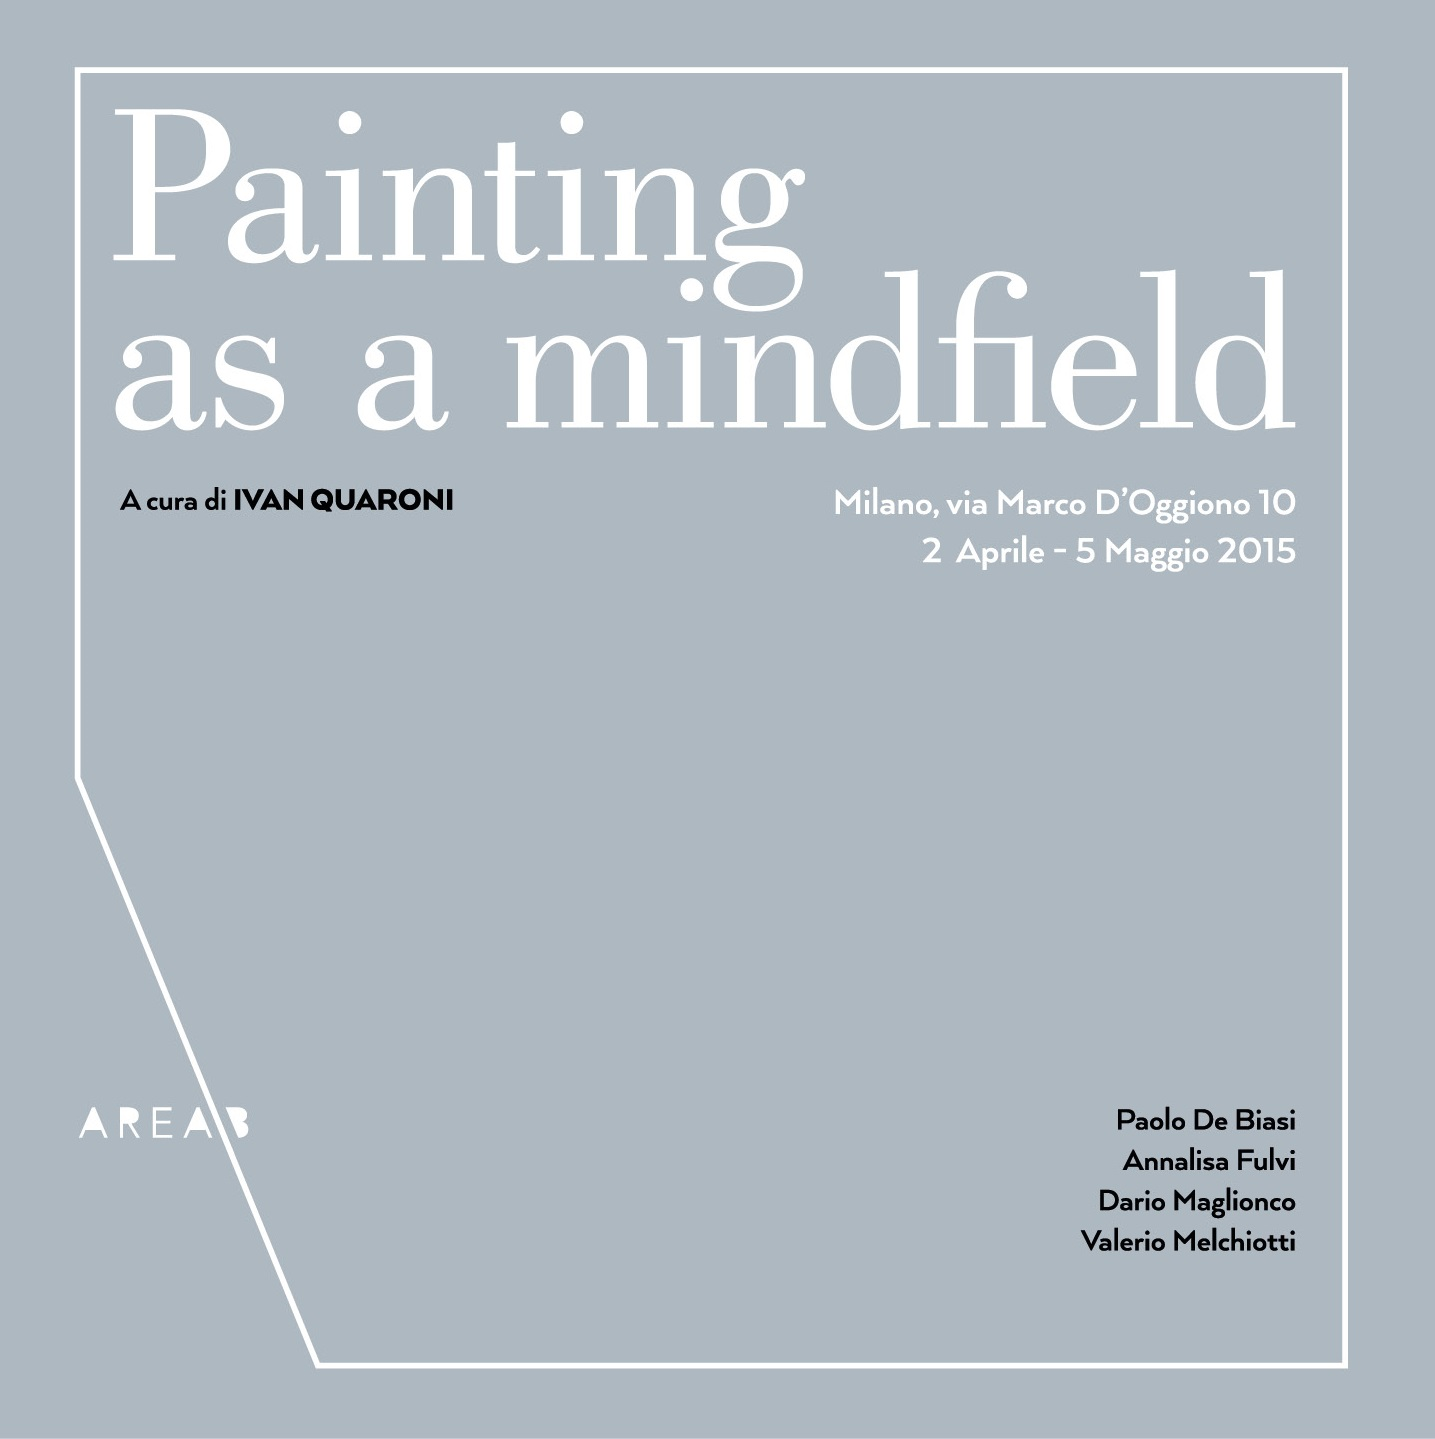 Painting as a mindfield